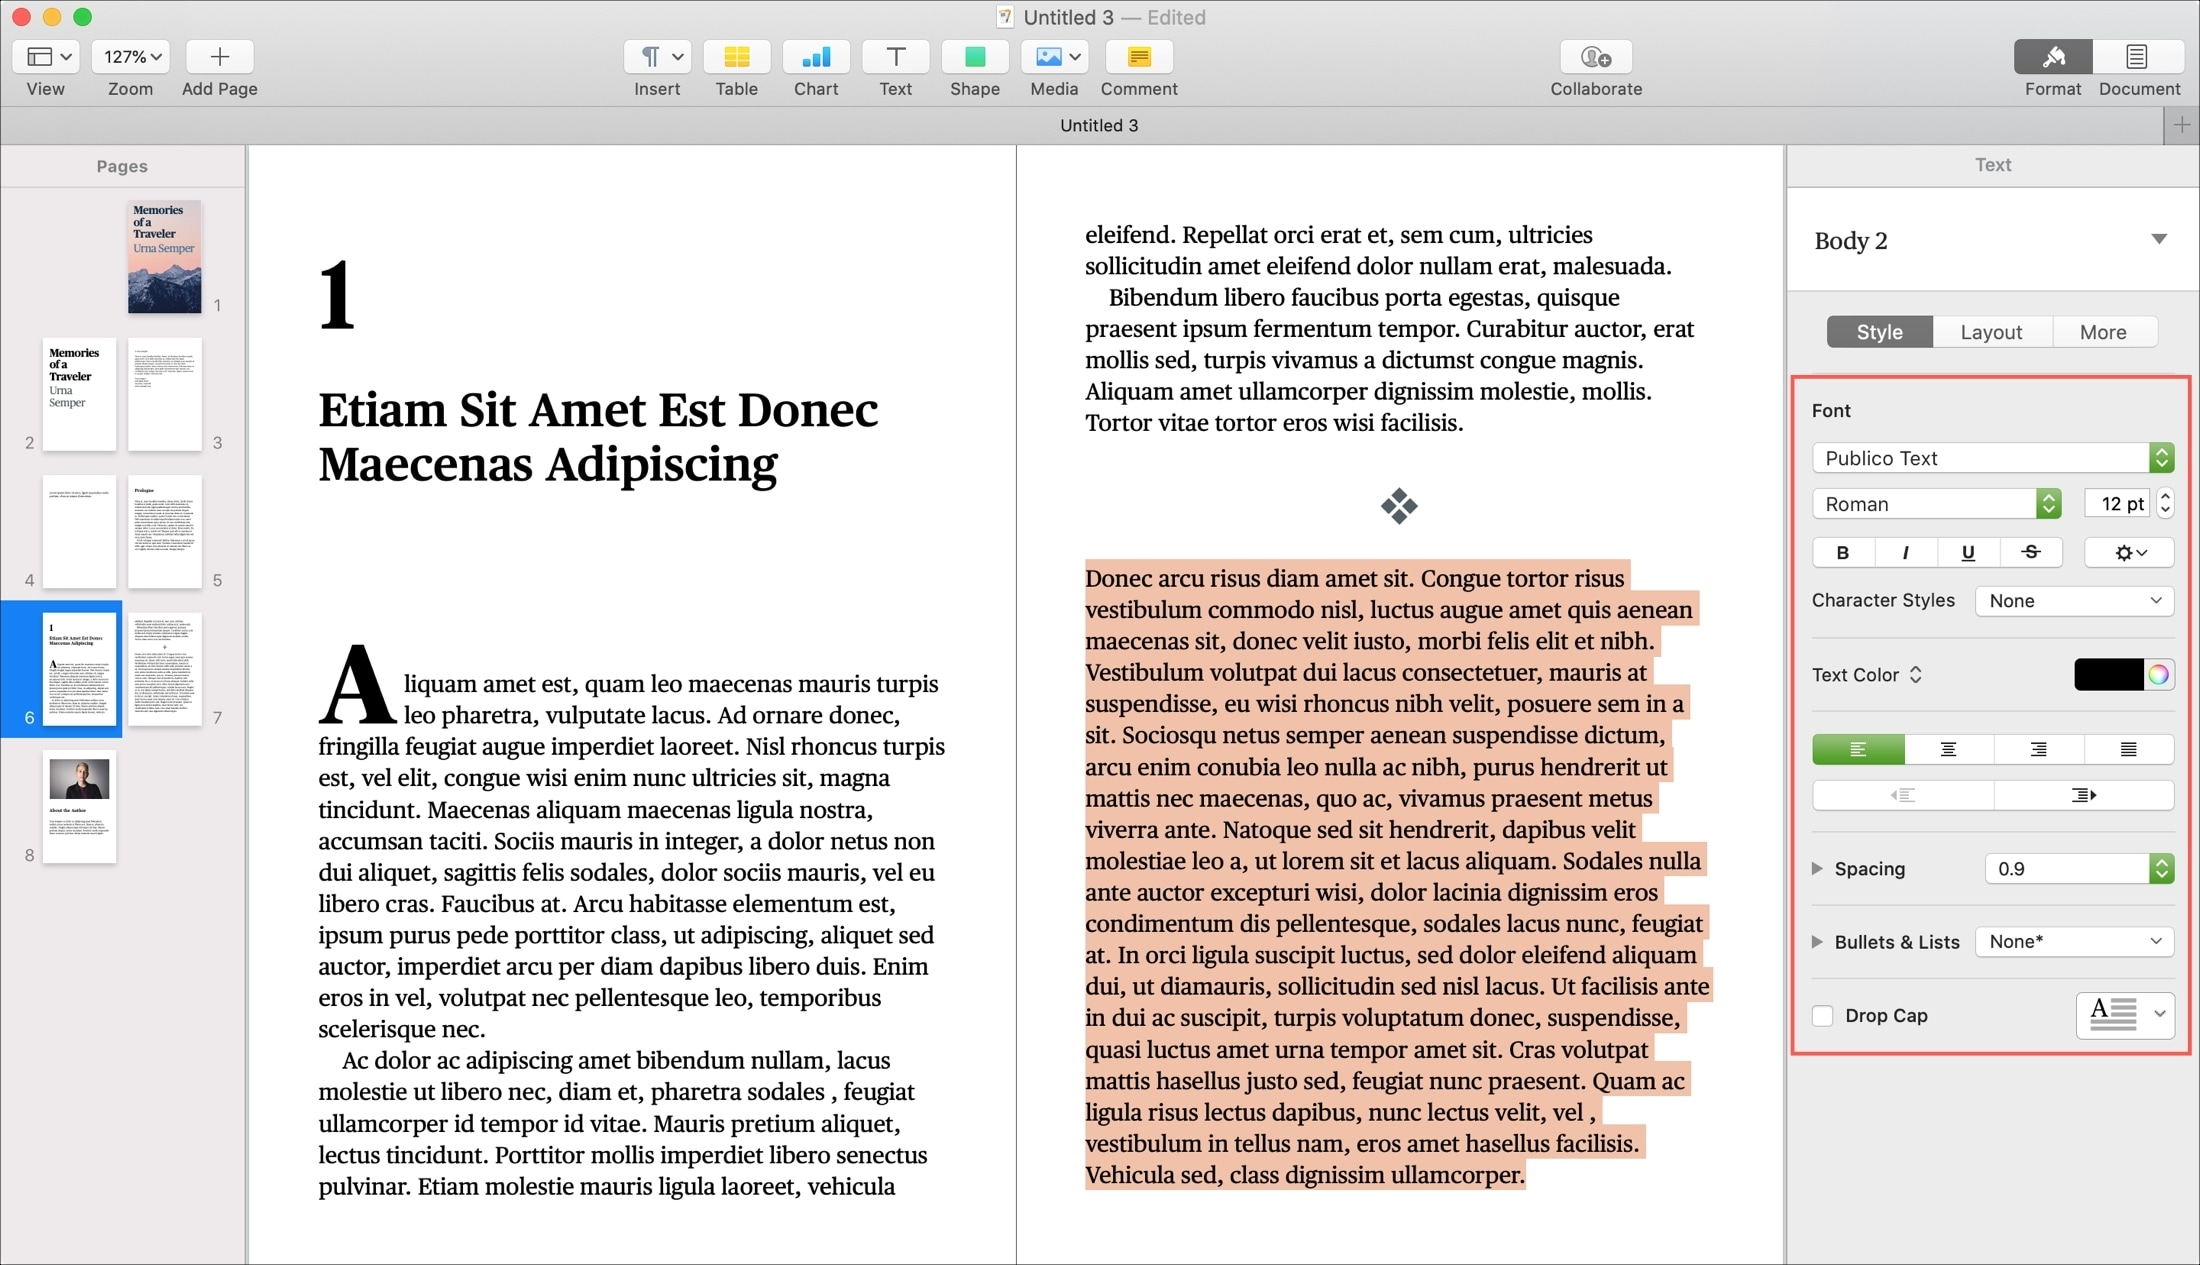 Pages Book Font Formatting on Mac